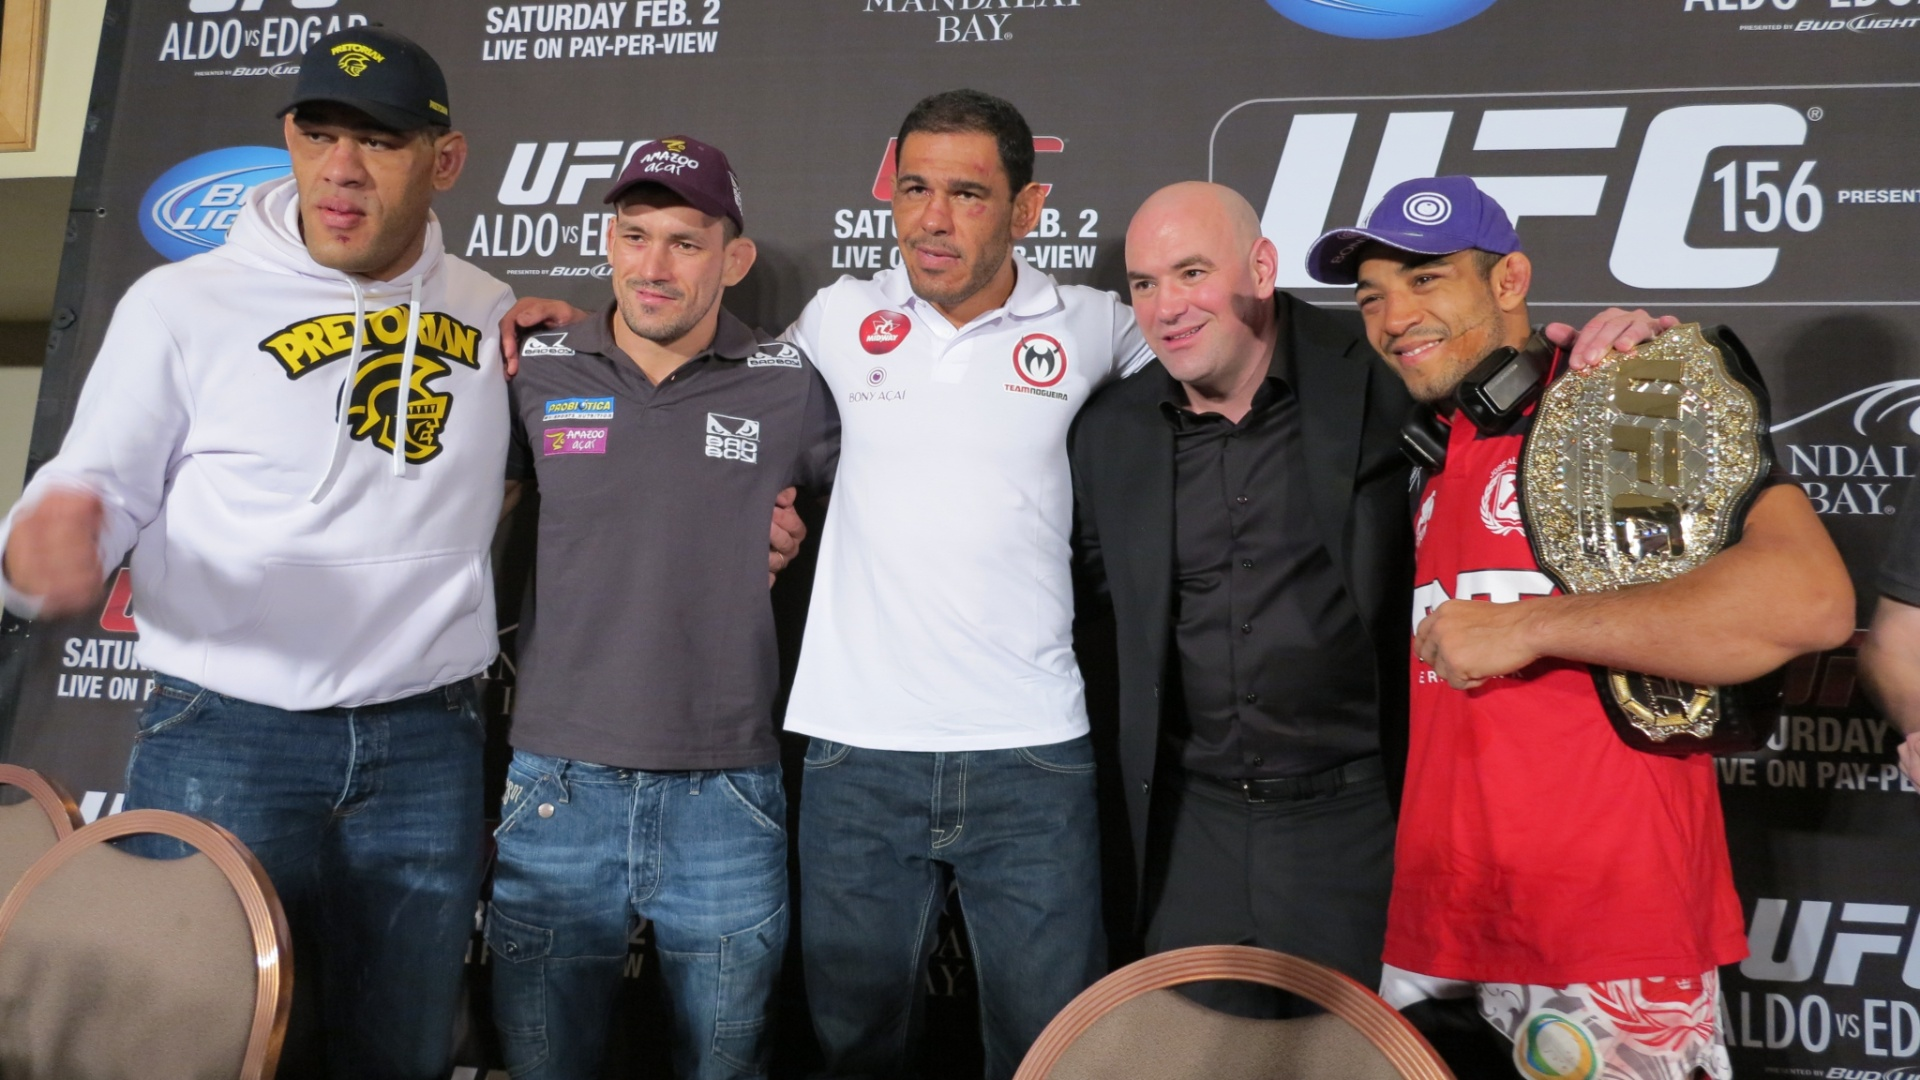 Brasileiros confraternizam com Dana White aps show no UFC 156